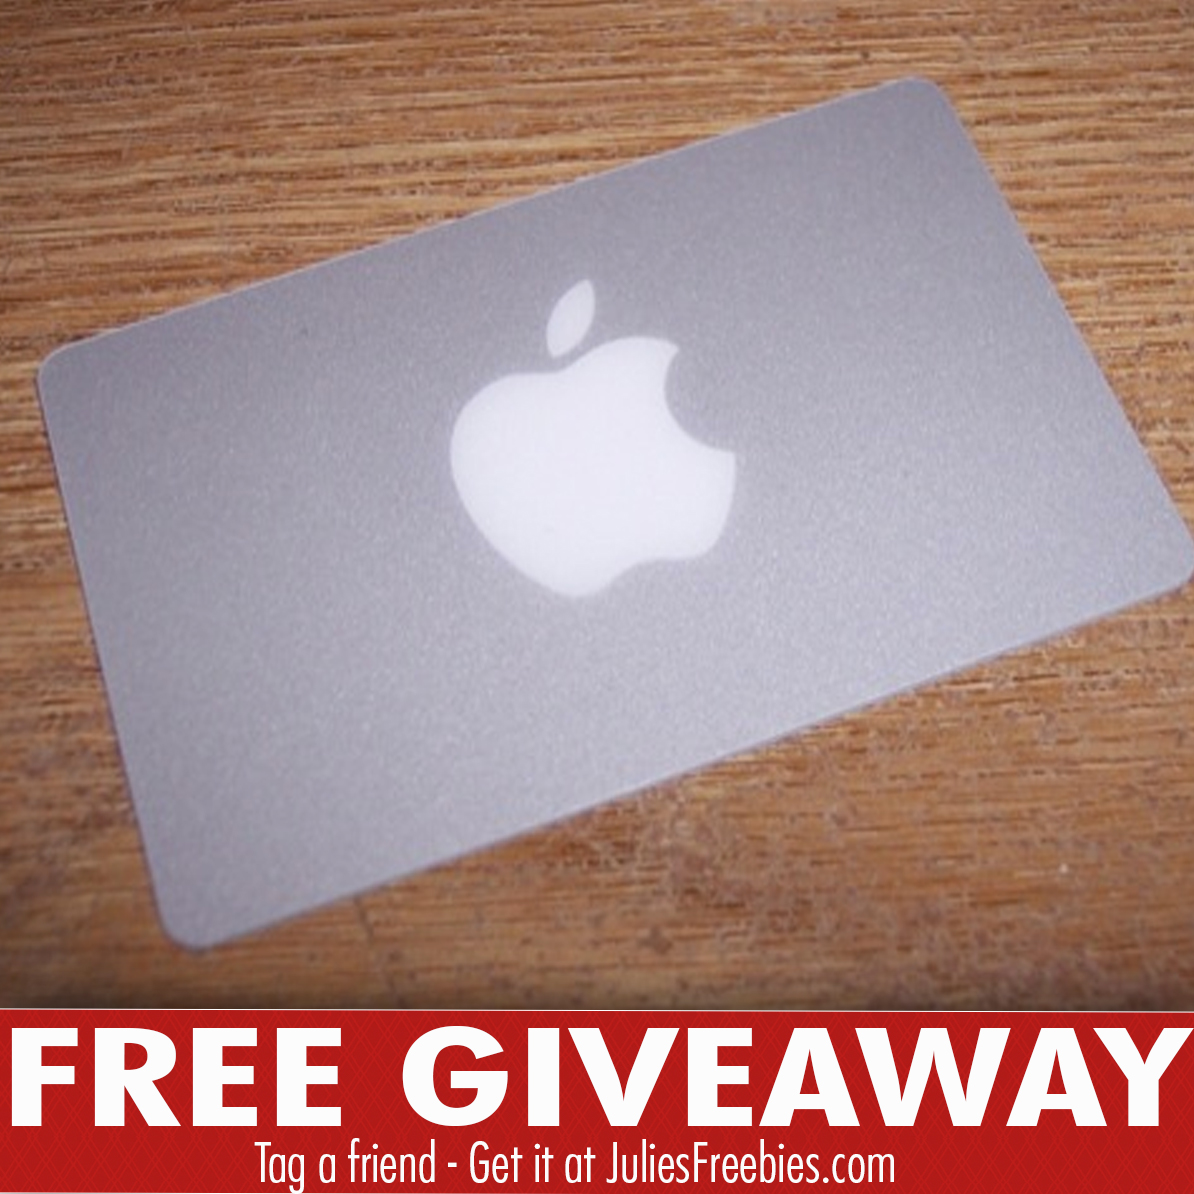 Itunes gift card hack 2018 | Free iTunes Gift Card Codes